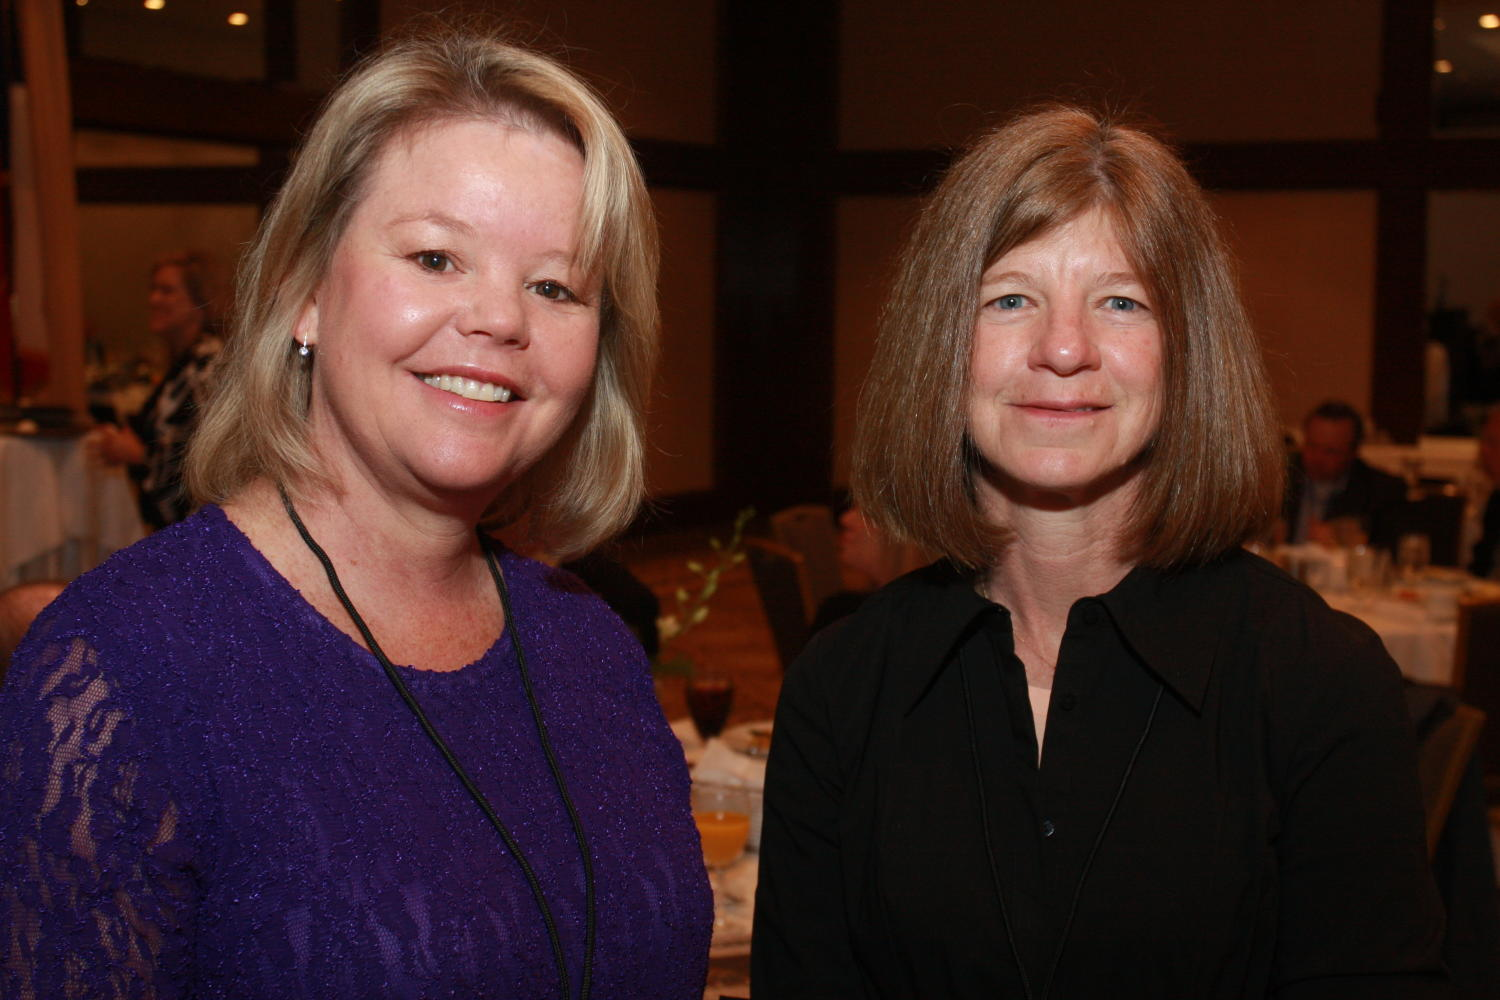 [Two women posing together at TDNA conference], Photograph of two women, one identified as Sharon Grigsby (right) standing together and smiling as their picture is taken during the 2010 Texas Daily Newspaper Association annual meeting held in Houston, Texas.,